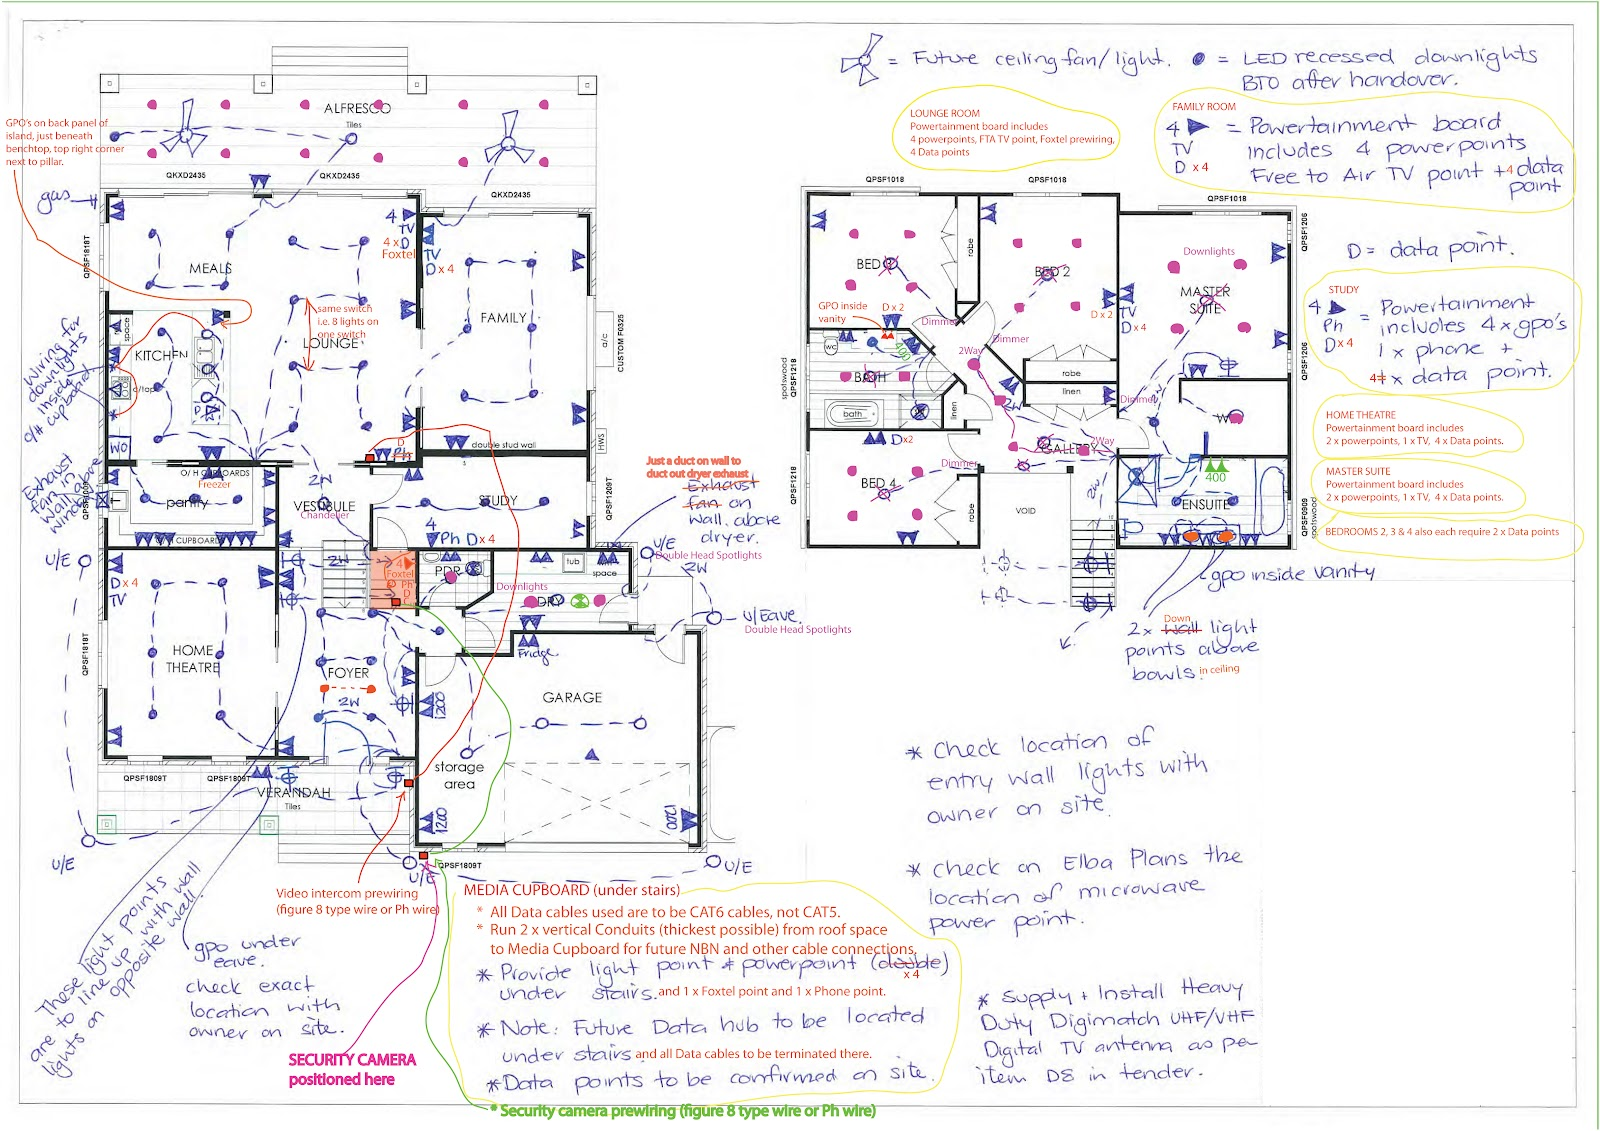 Click to view larger image of electrical plan.